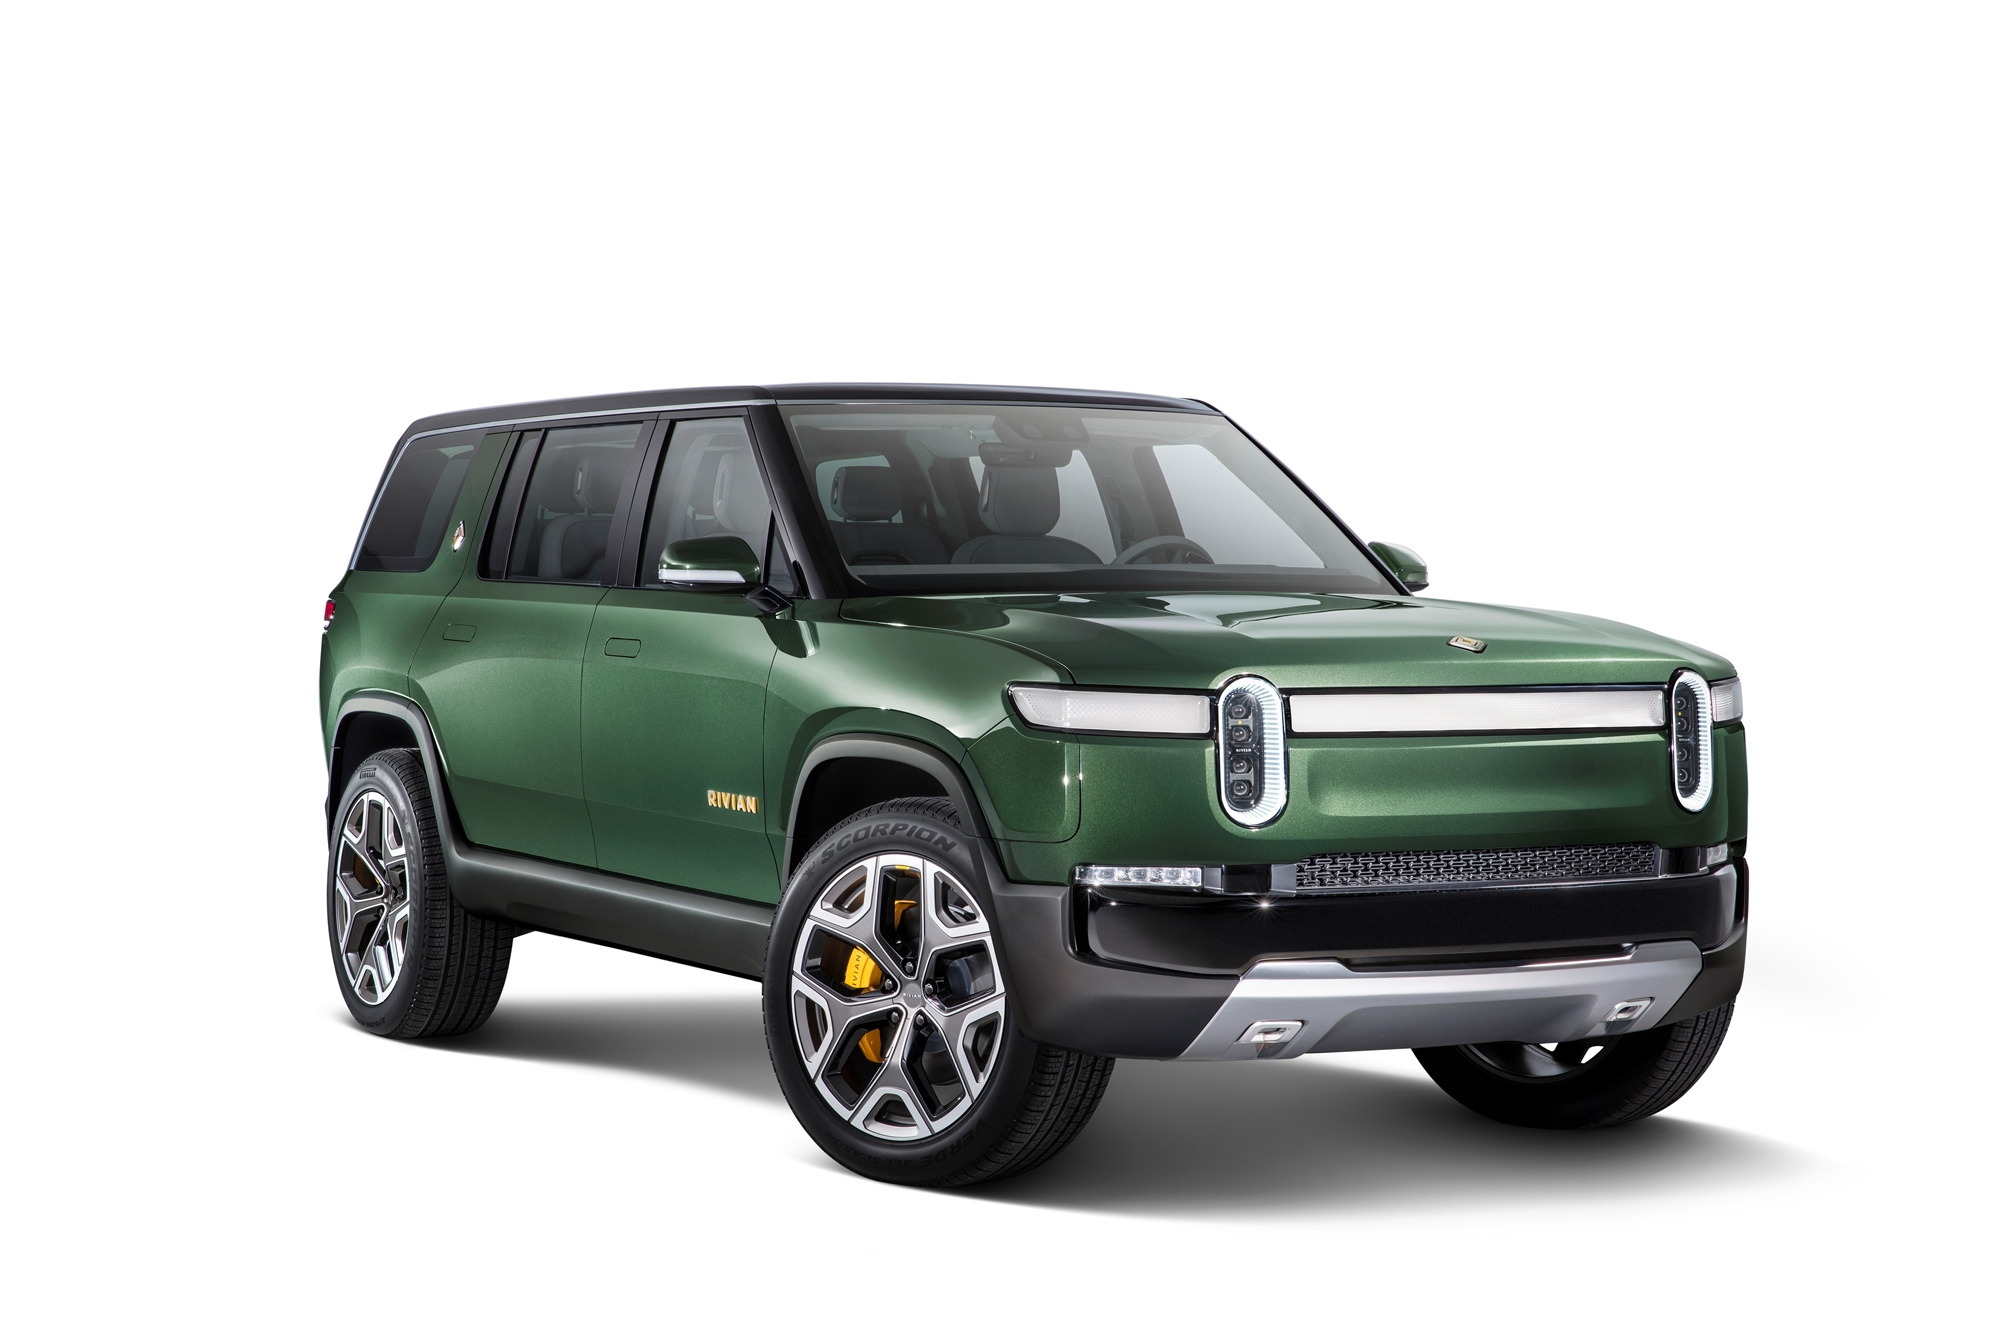 2021 Rivian R1S SUV Full Specs, Features and Price | CarBuzz